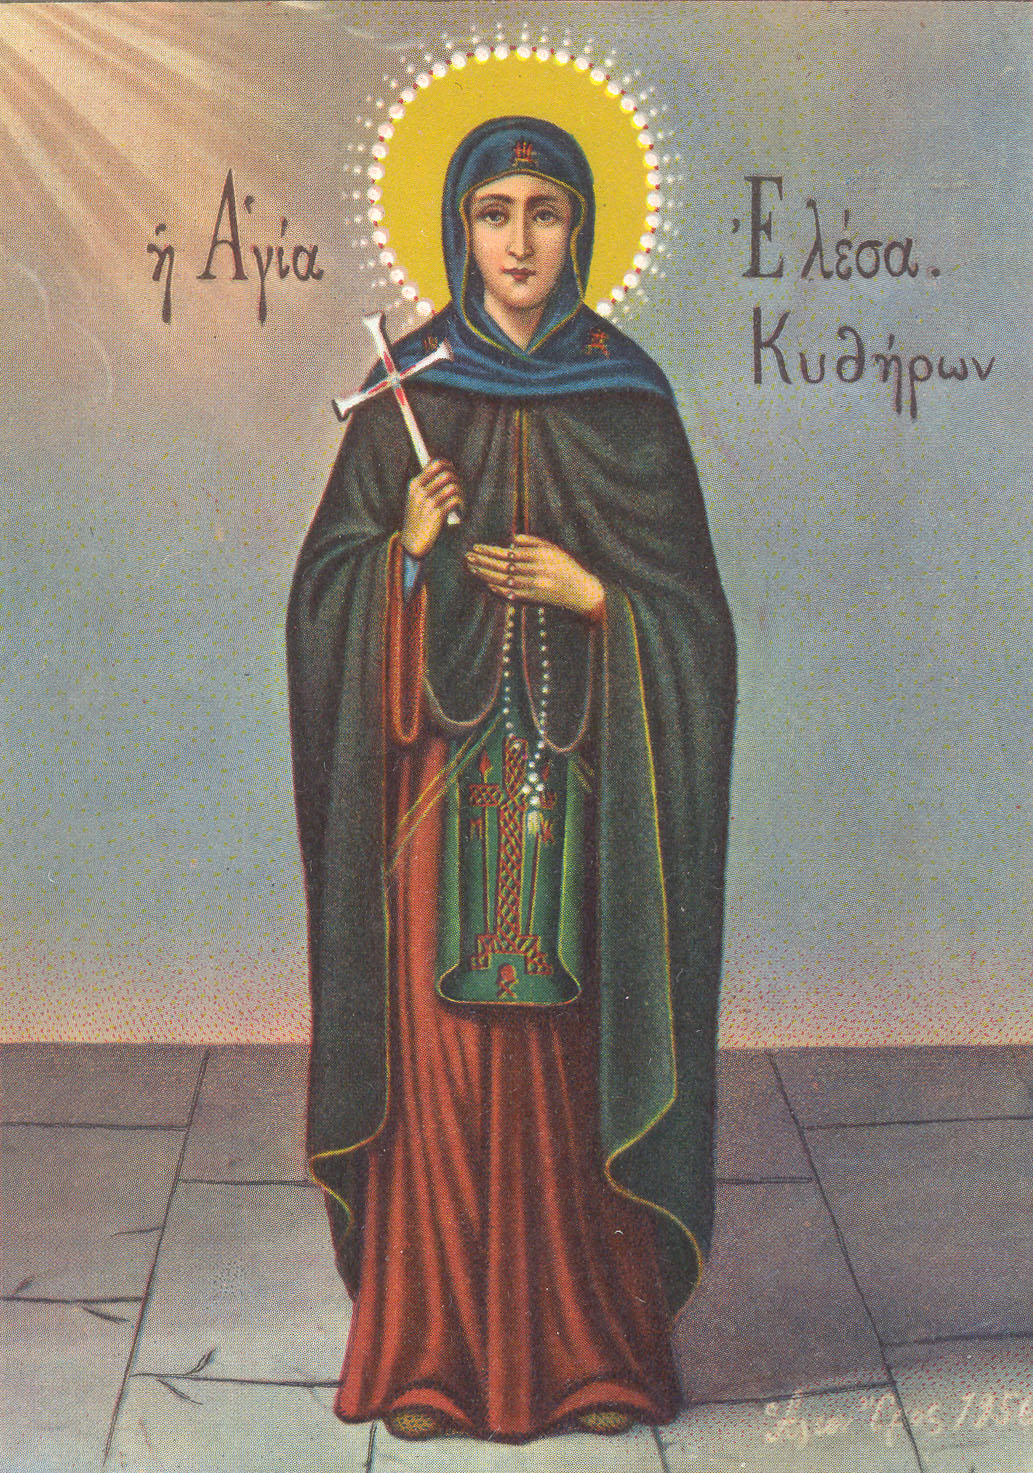 An Orthodox icon of St Elessa of Kythera from Mount Athos.